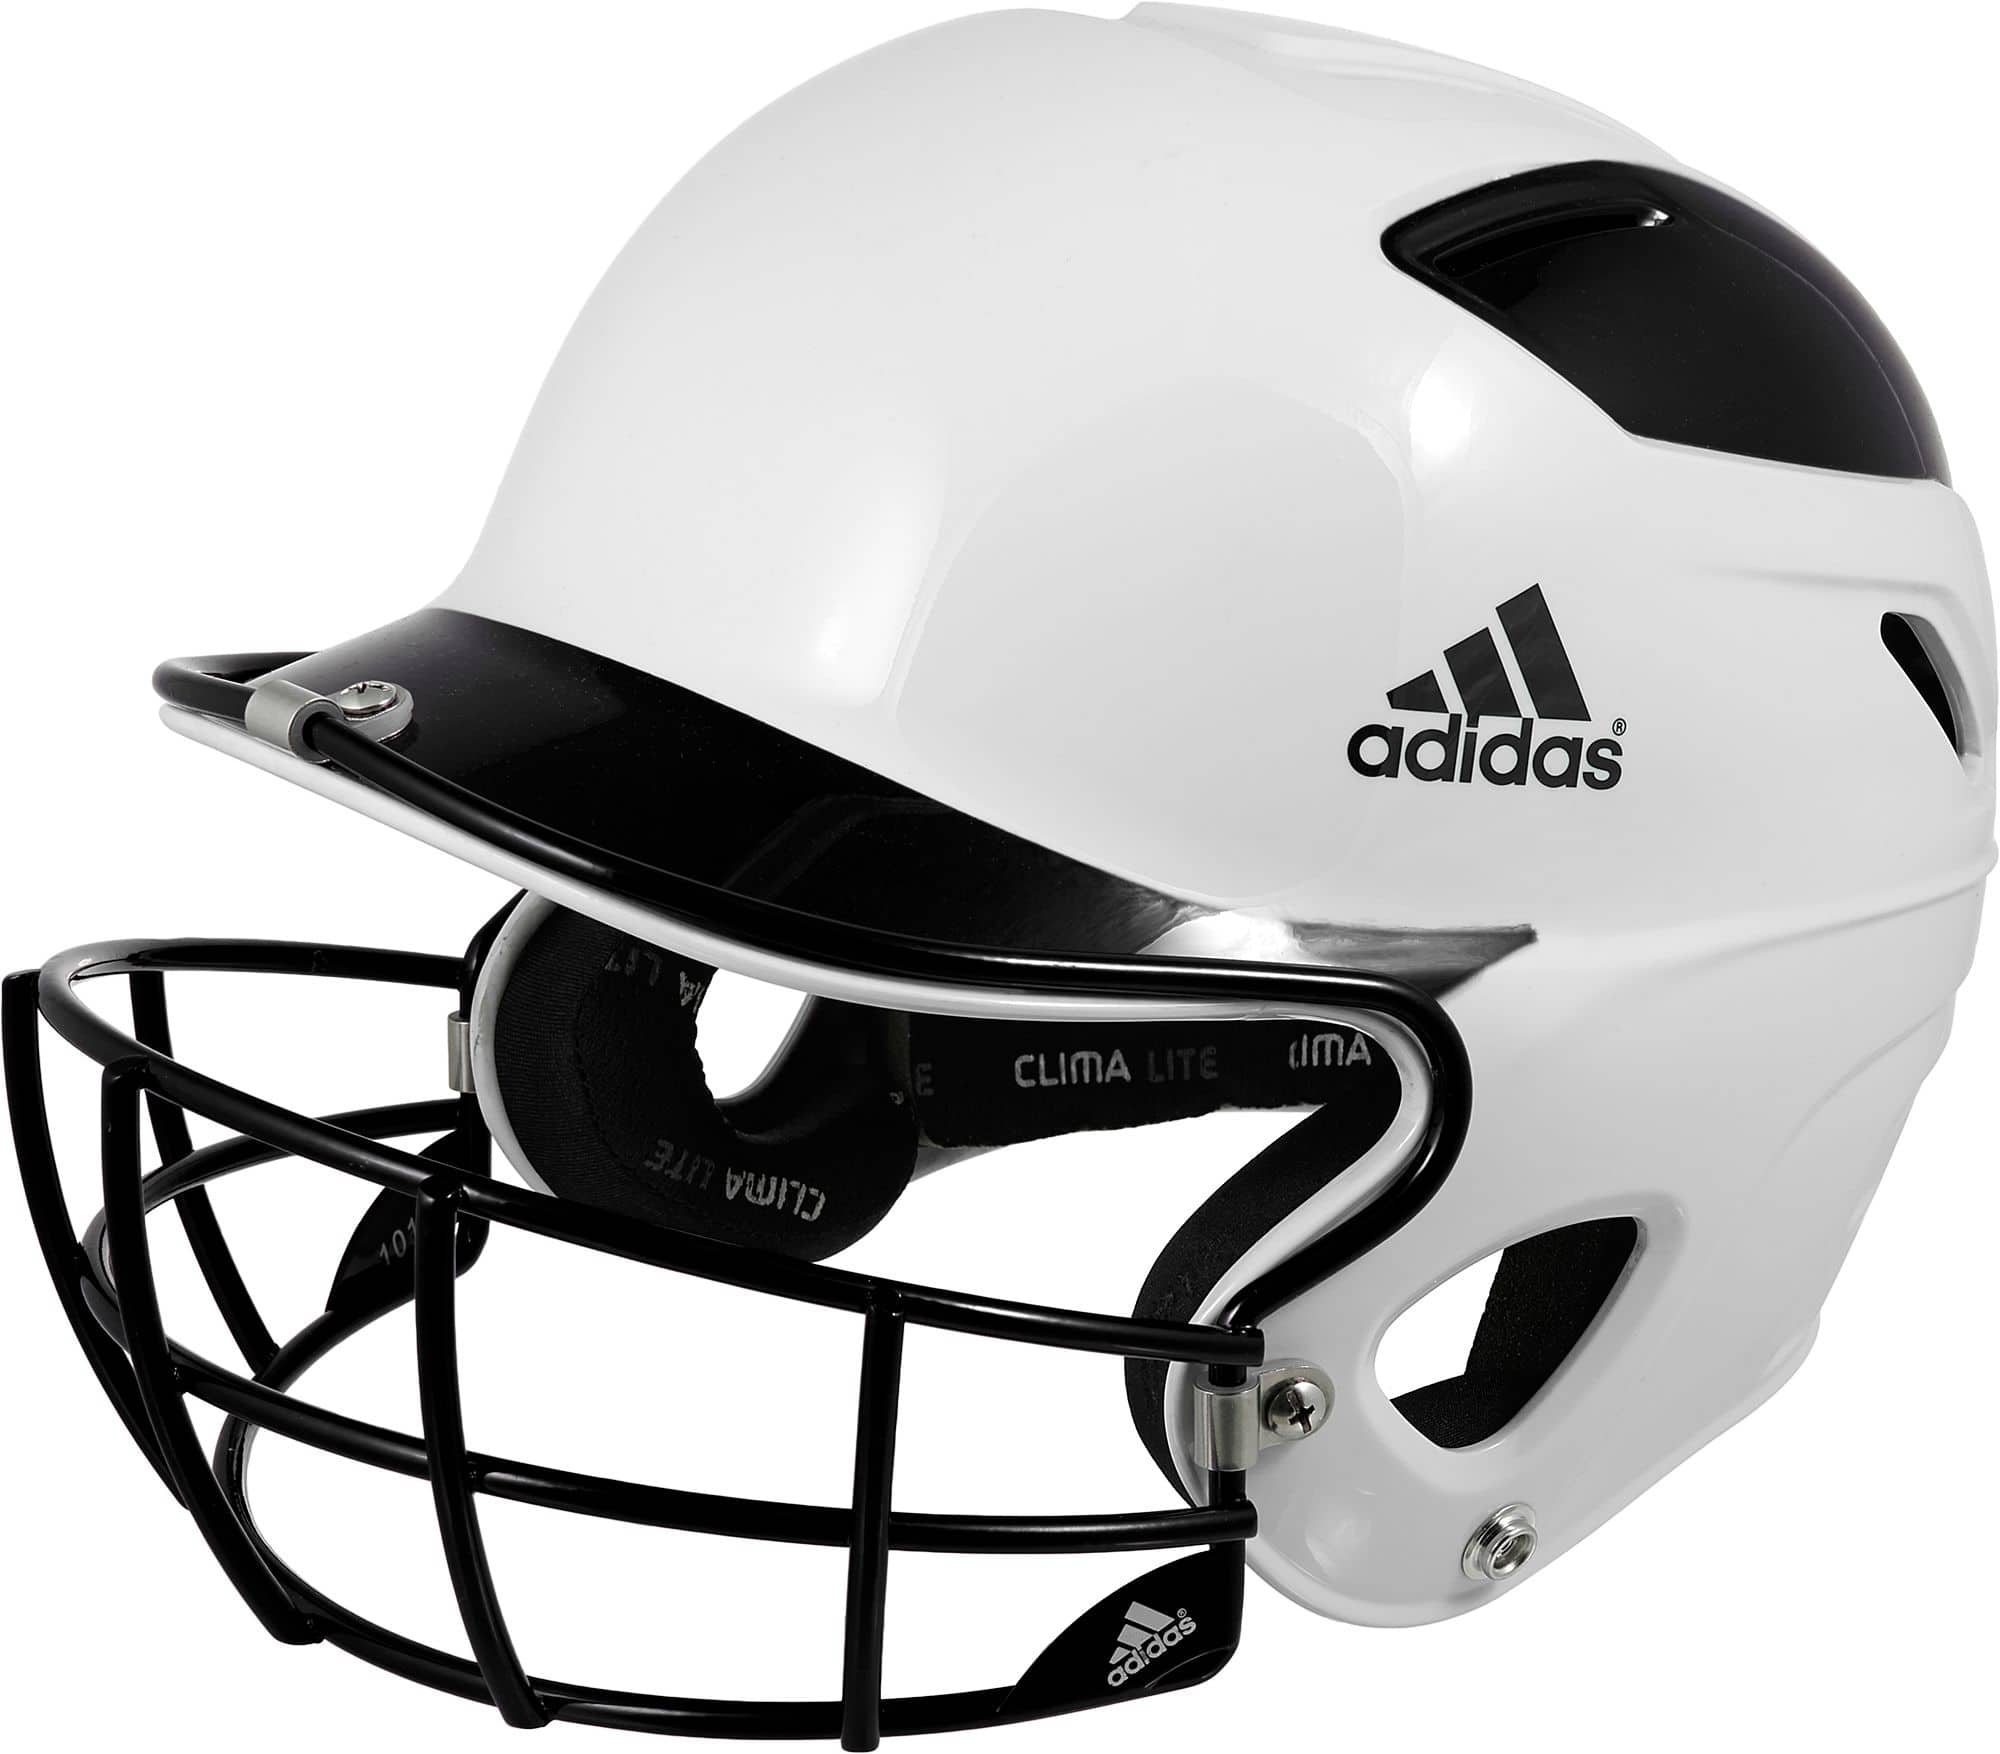 Adidas Trilogy Fastpitch Softball Helmet (black, red, or blue) $20 + Free Shipping